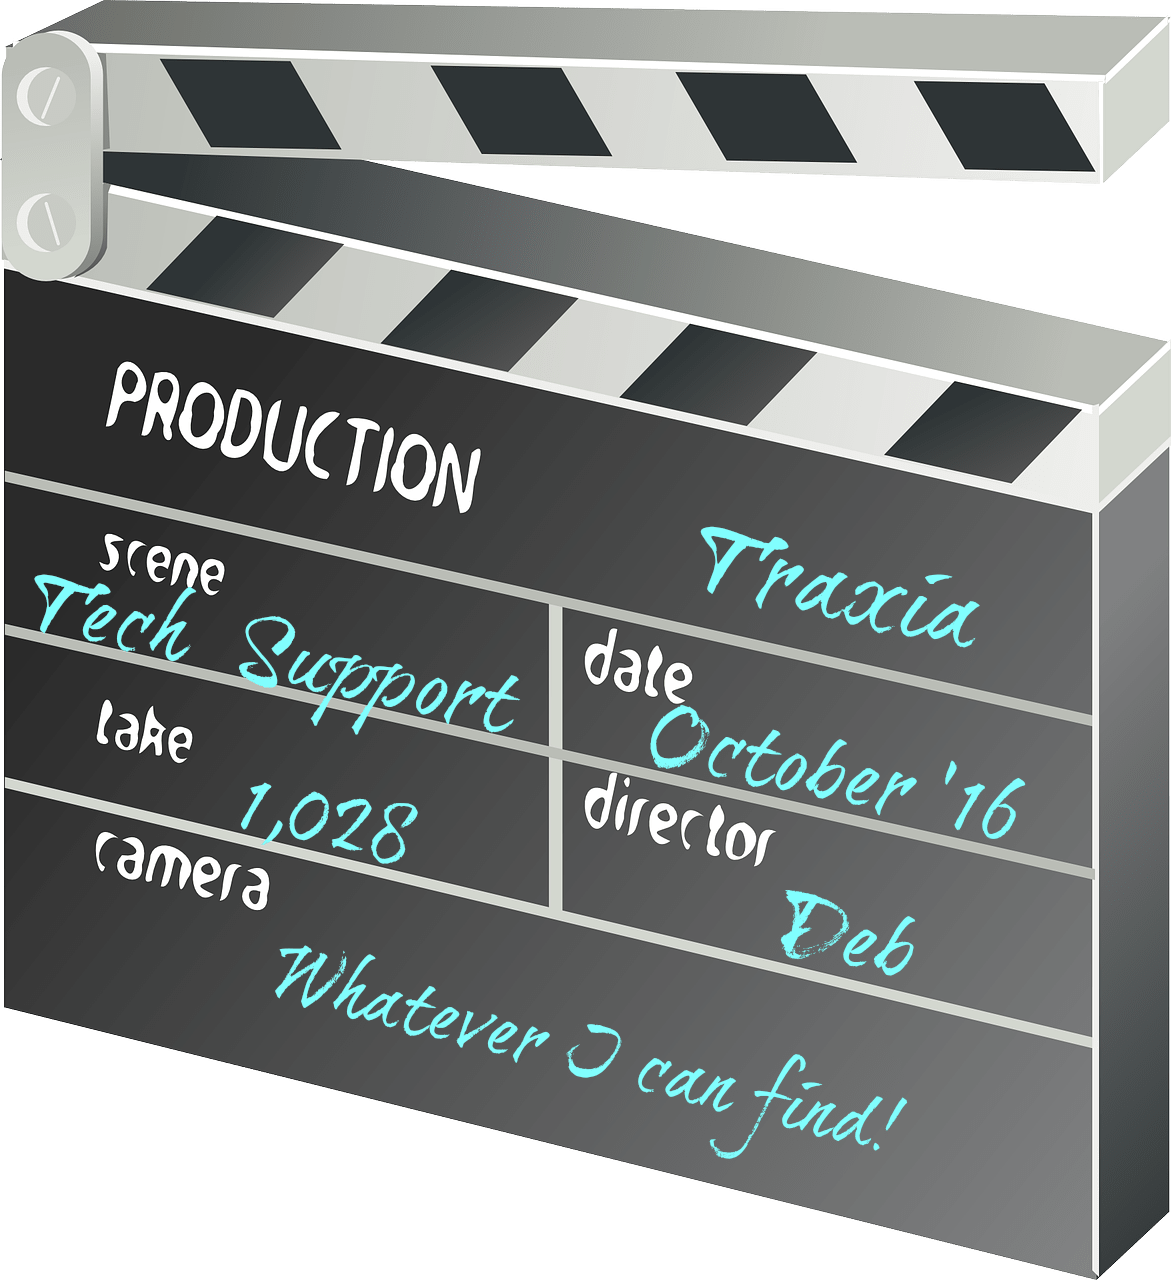 Video marketing doesn't need a clapper board